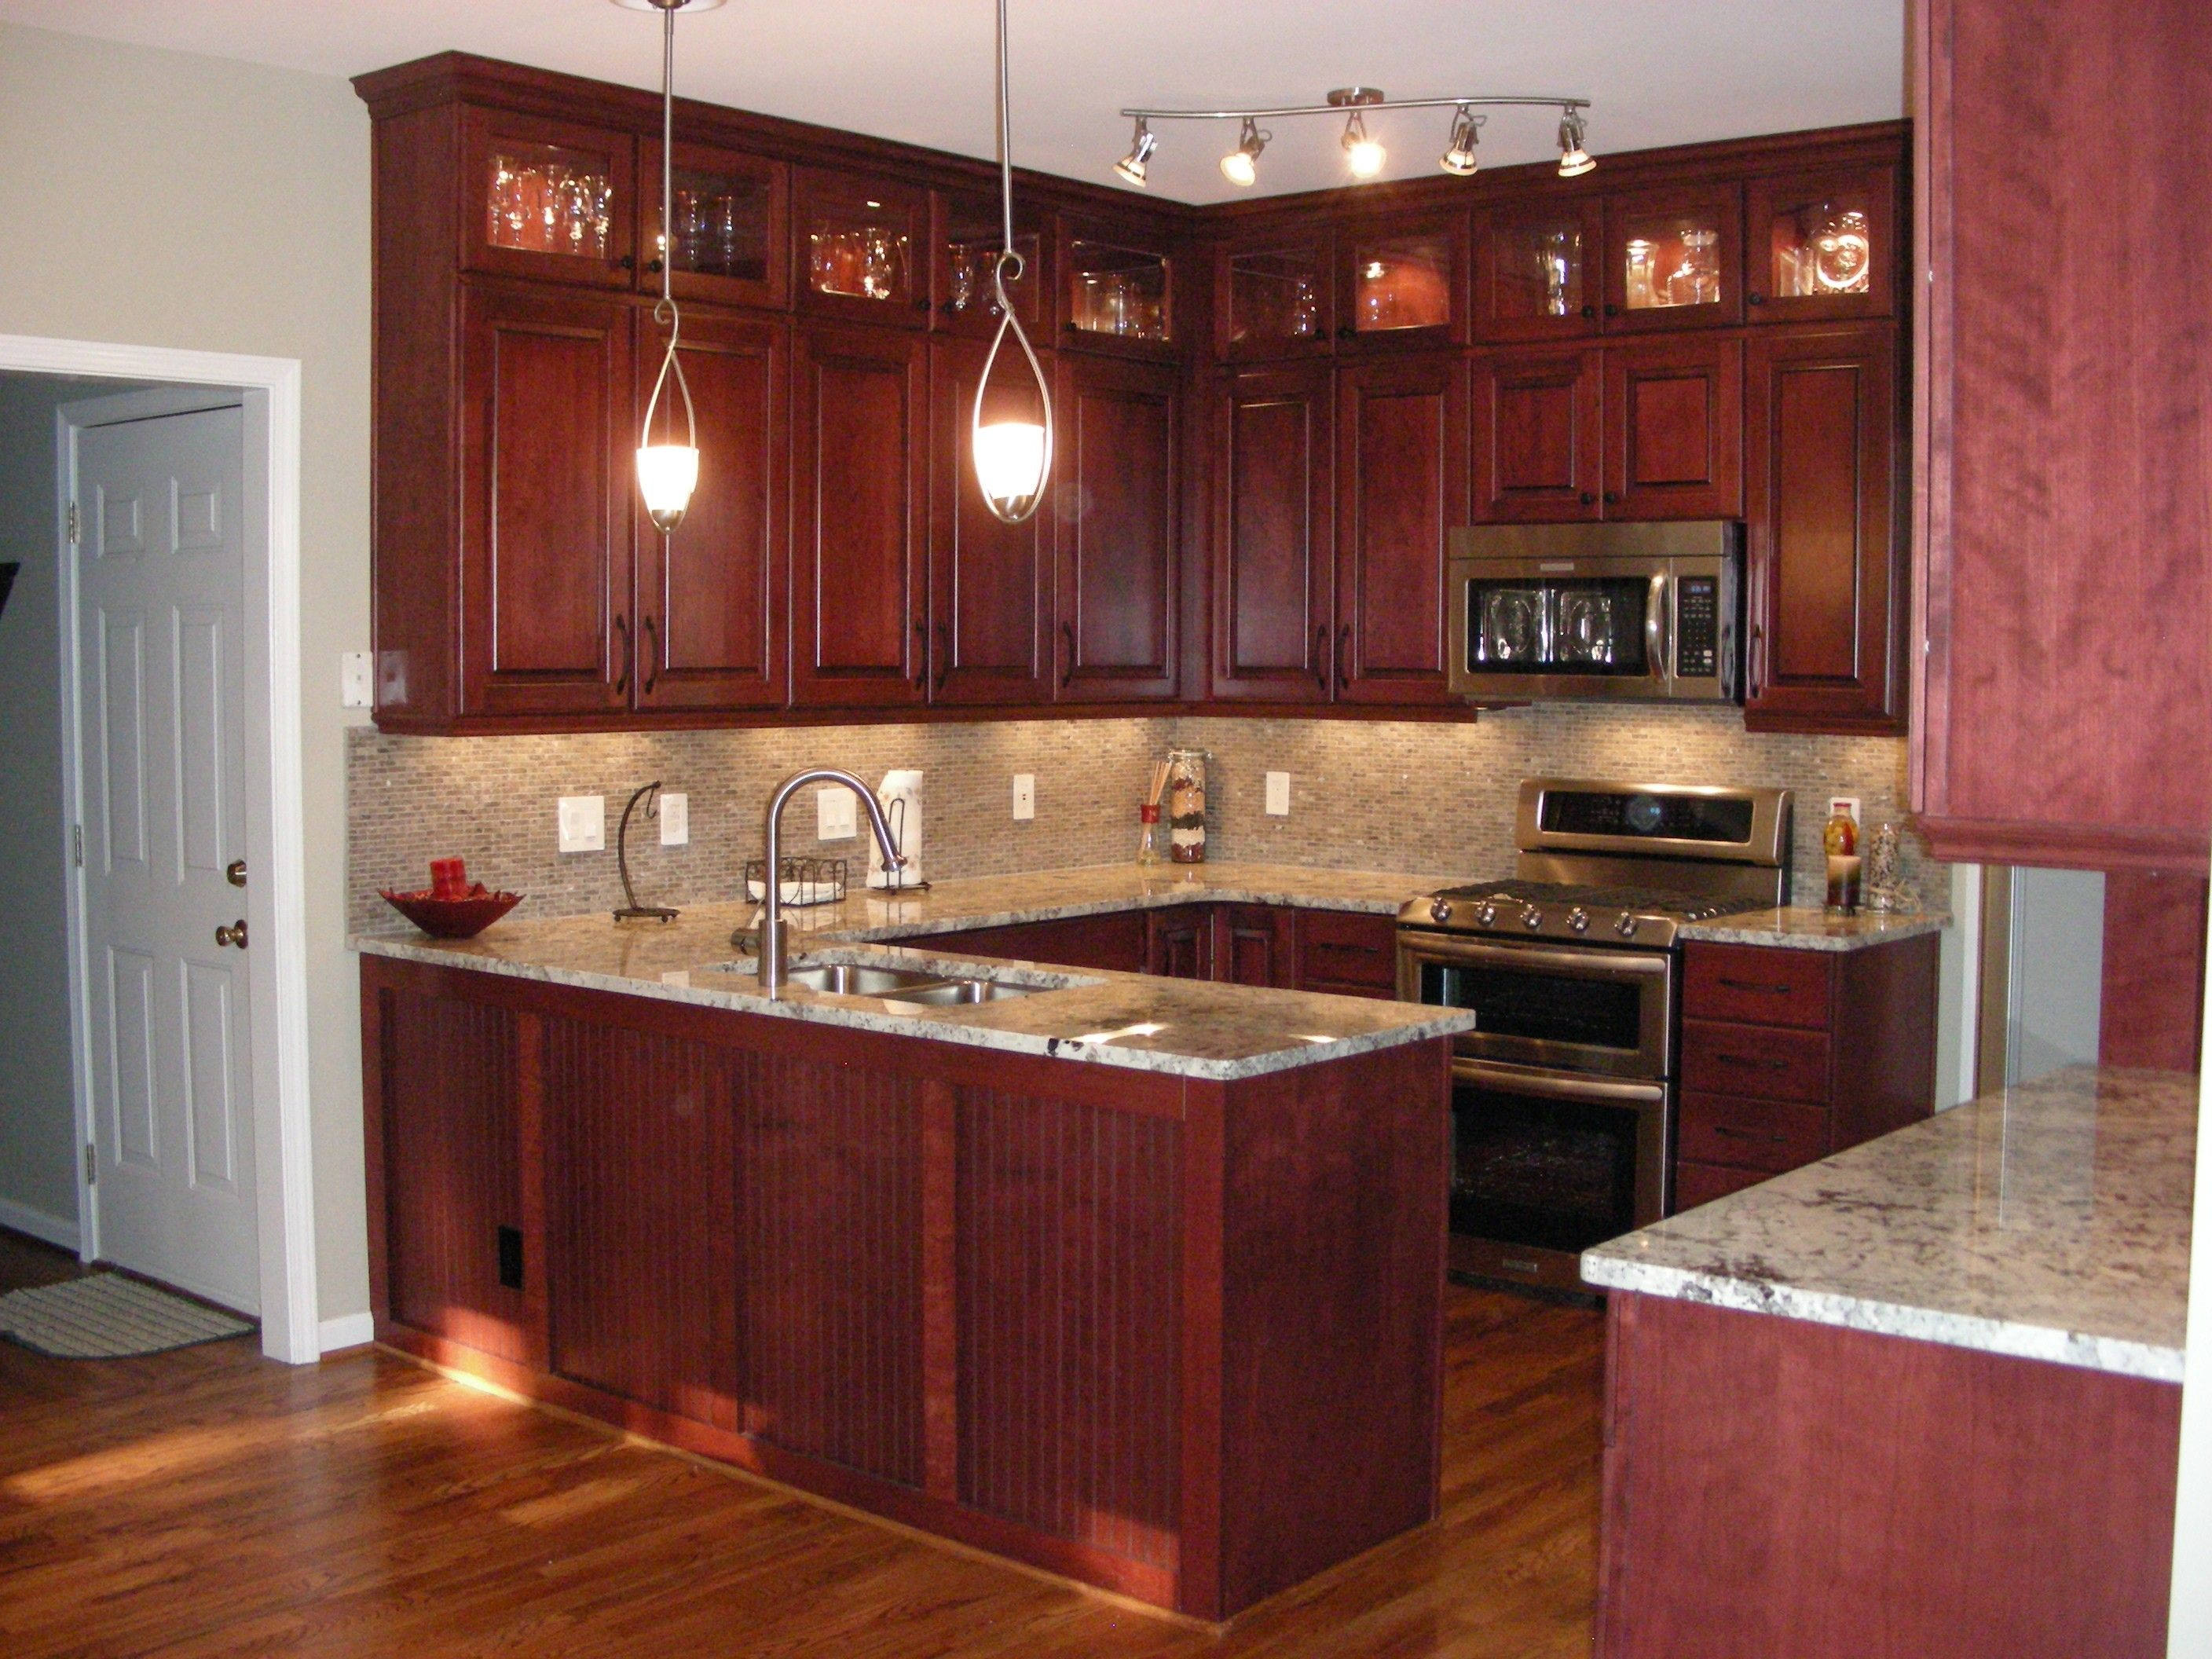 Cherry Cabinets U Shaped Kitchen Villa Cherry Kitchen Cabinets White And Cherry Kitchen Cabin Cherry Wood Kitchens Kitchen Craft Cabinets Kitchen Remodel Small